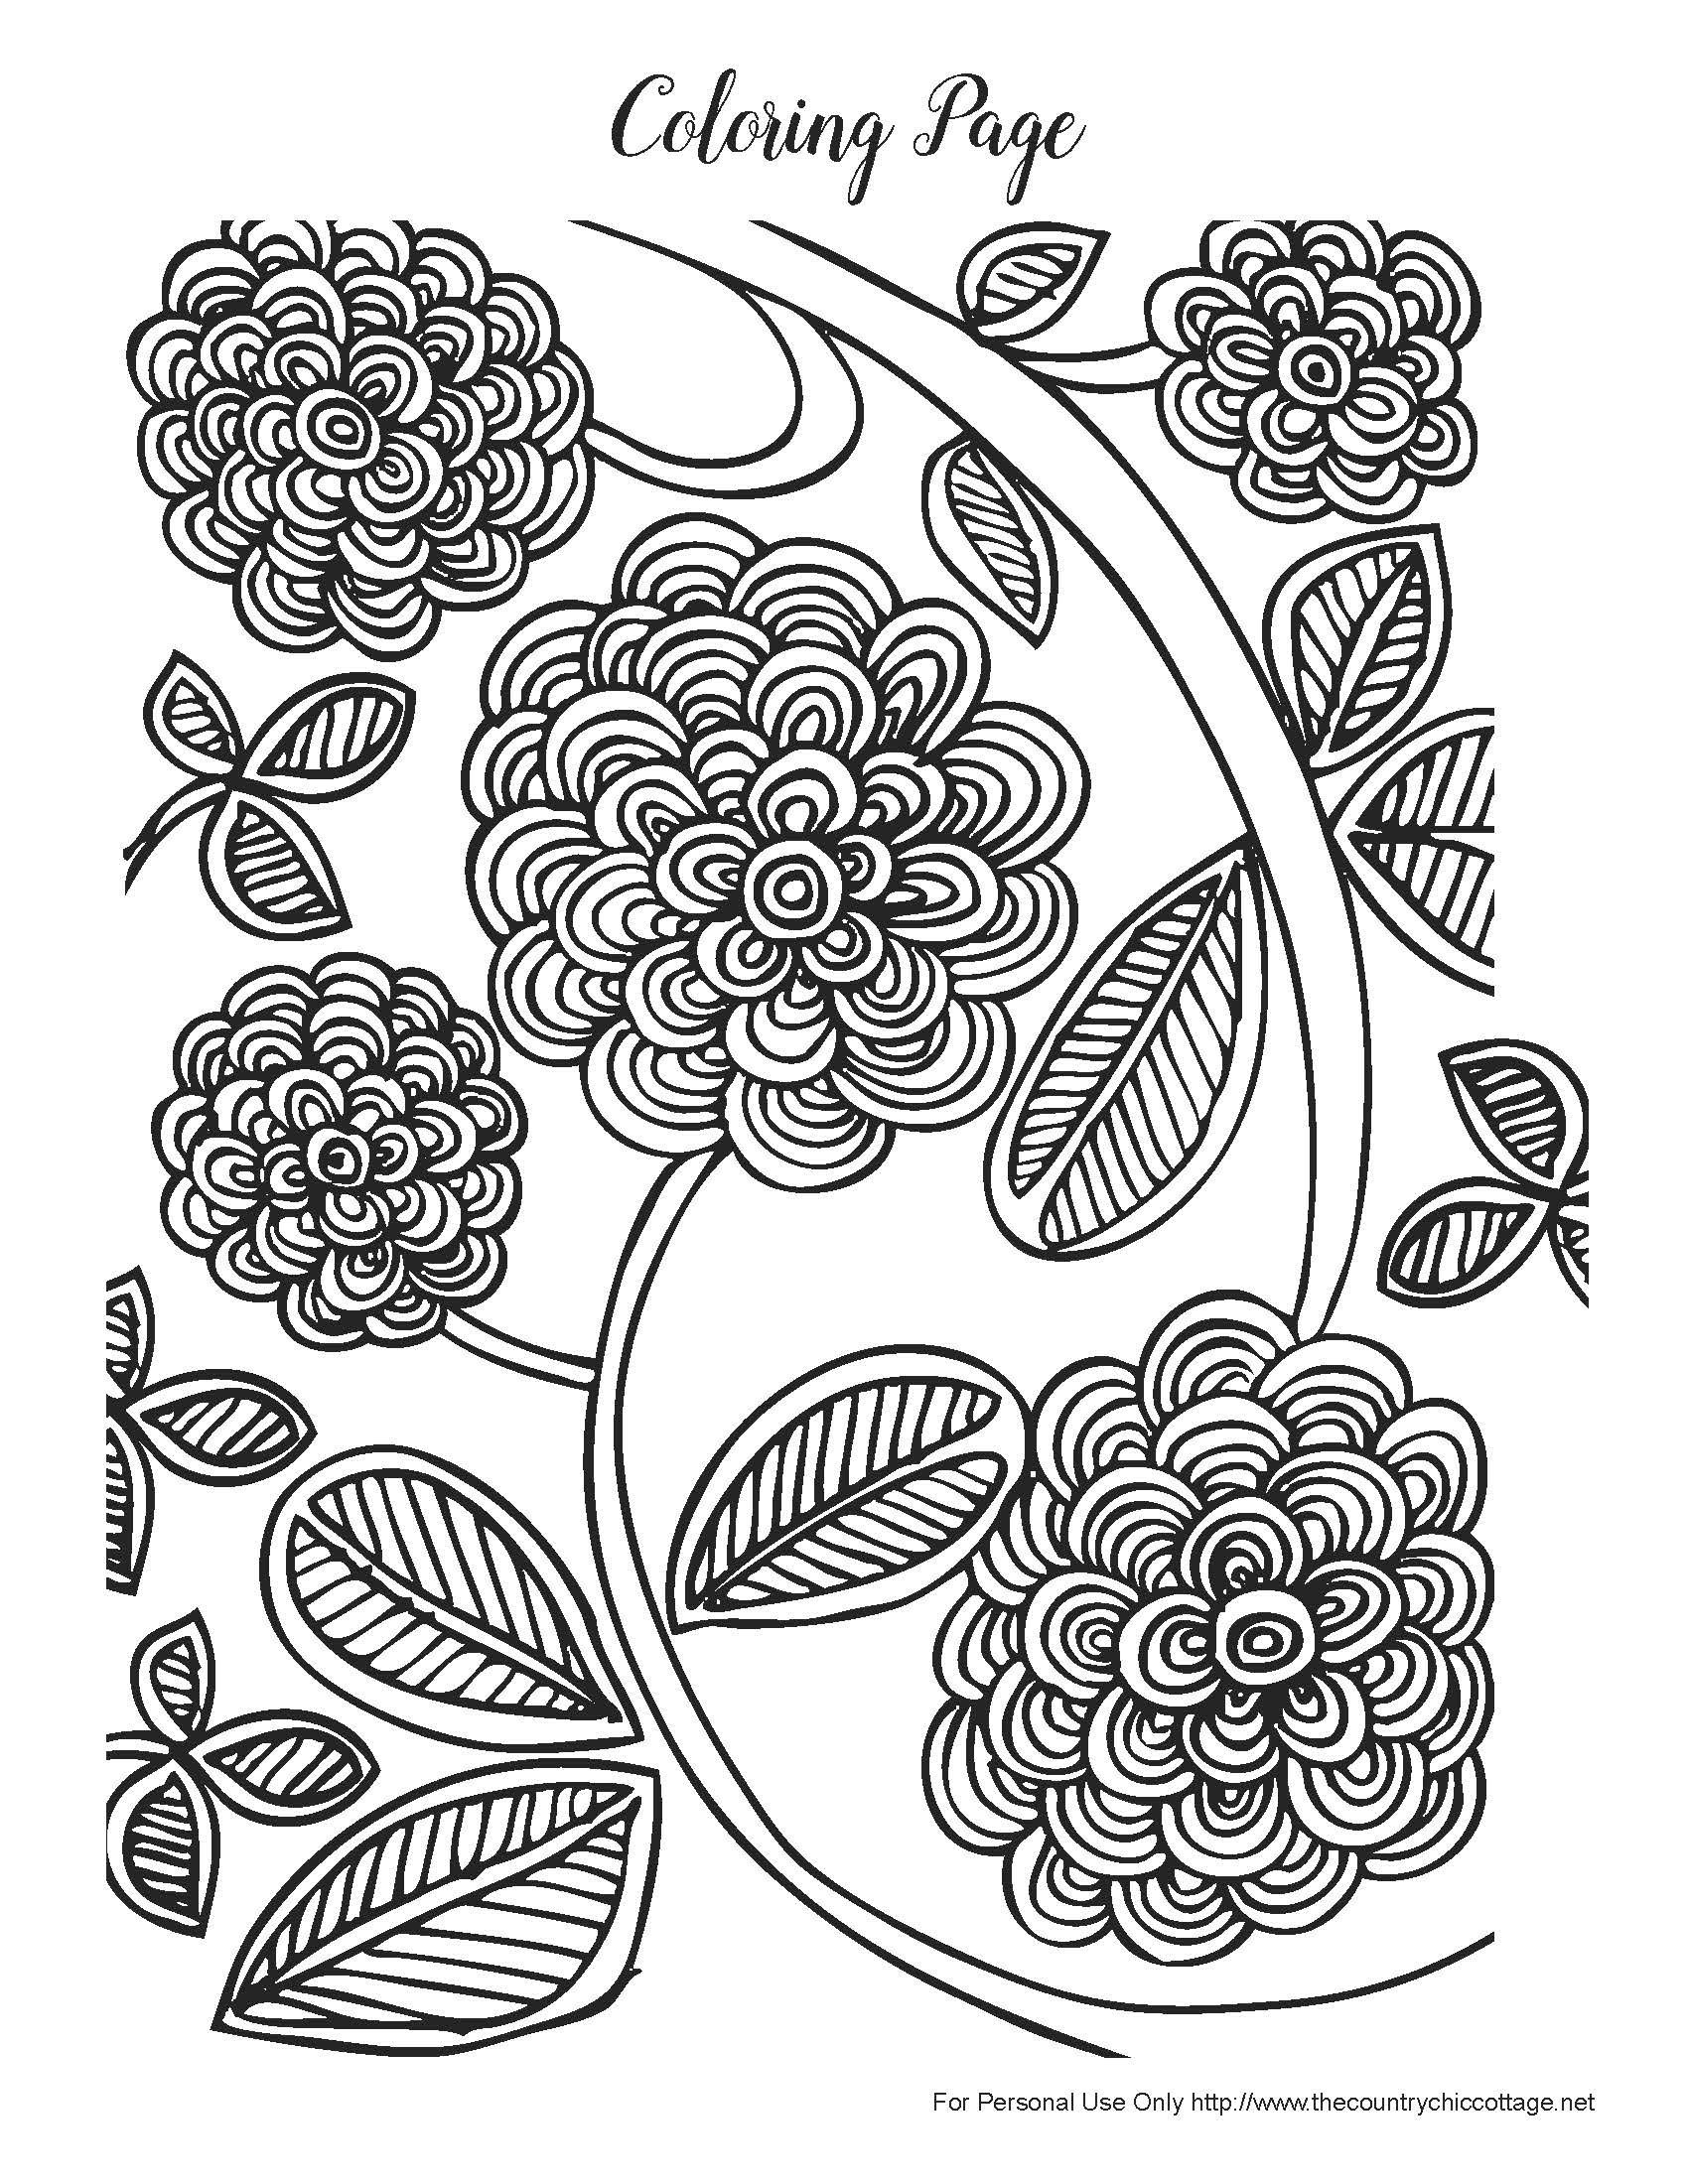 Free Spring Coloring Pages For Adults | Products I Love | Spring - Free Printable Spring Coloring Pages For Adults